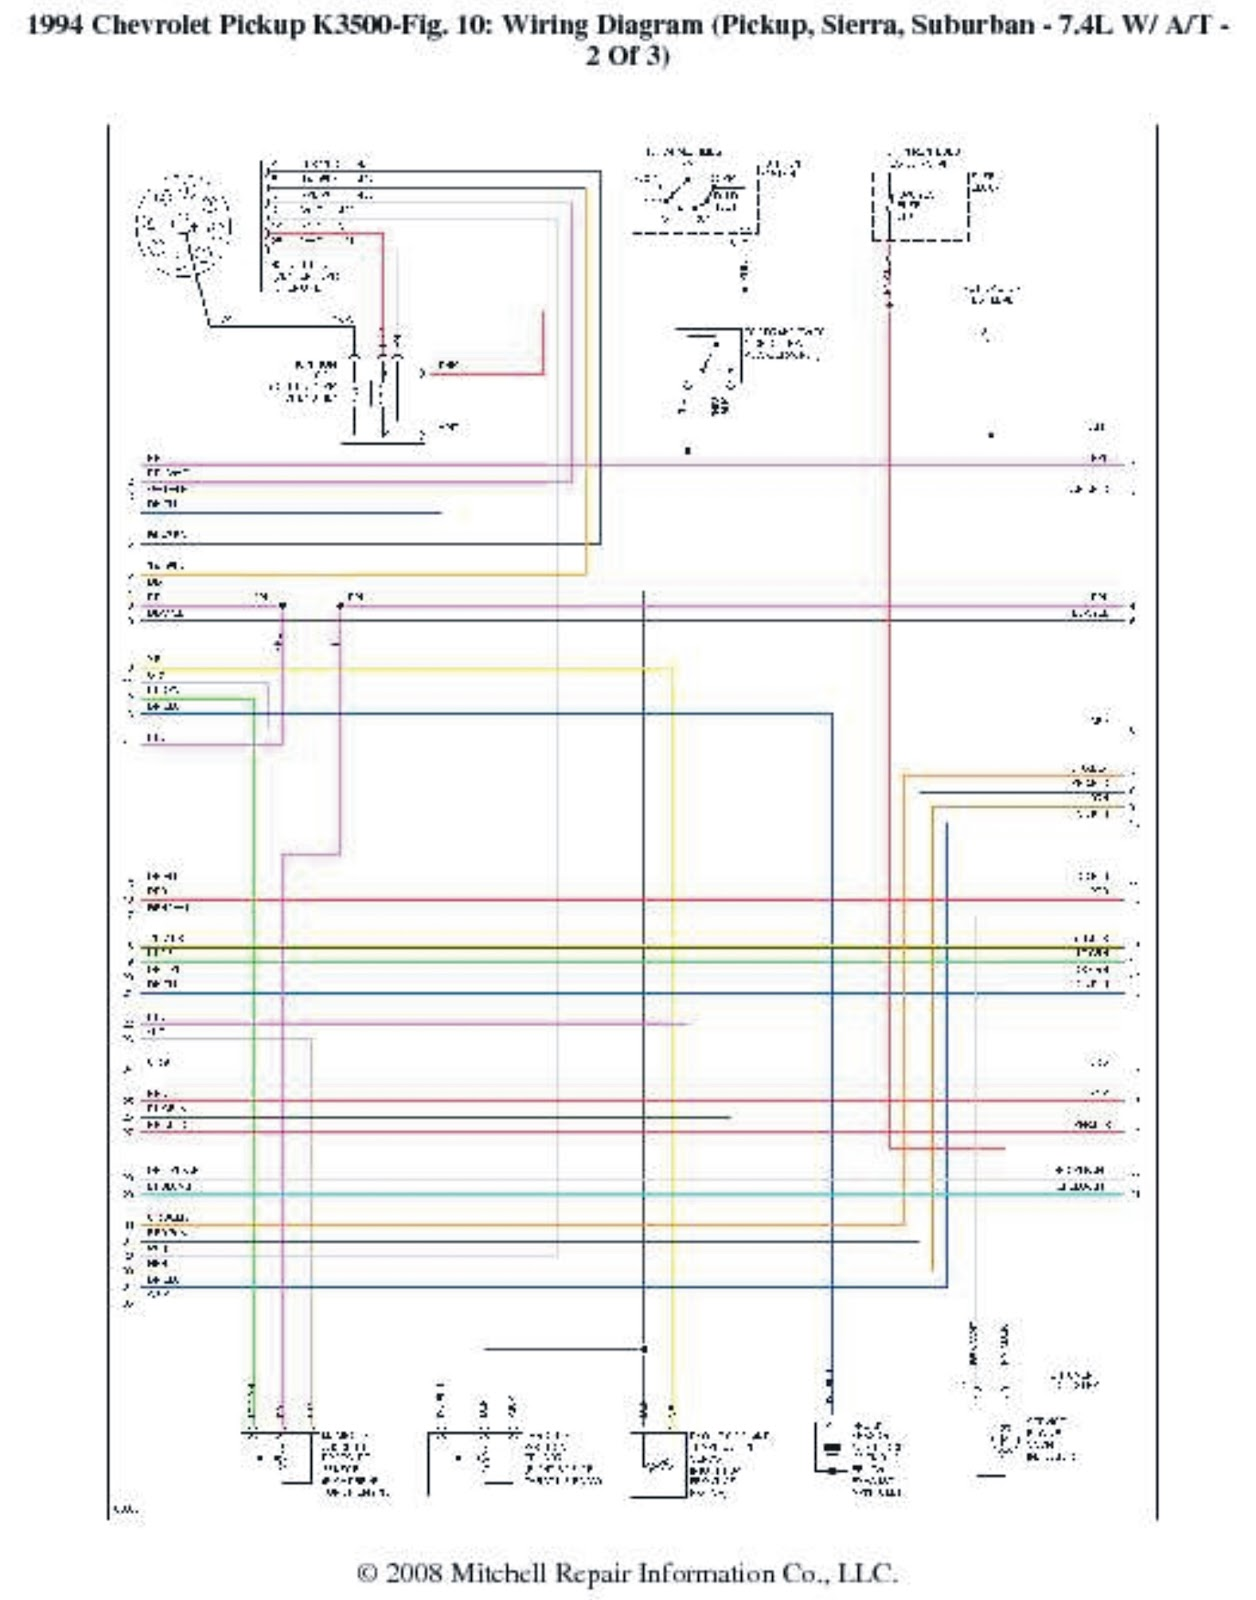 82 toyota alternator wiring diagram wiring library 1999 toyota camry fuse box diagram 82 toyota alternator [ 1256 x 1600 Pixel ]